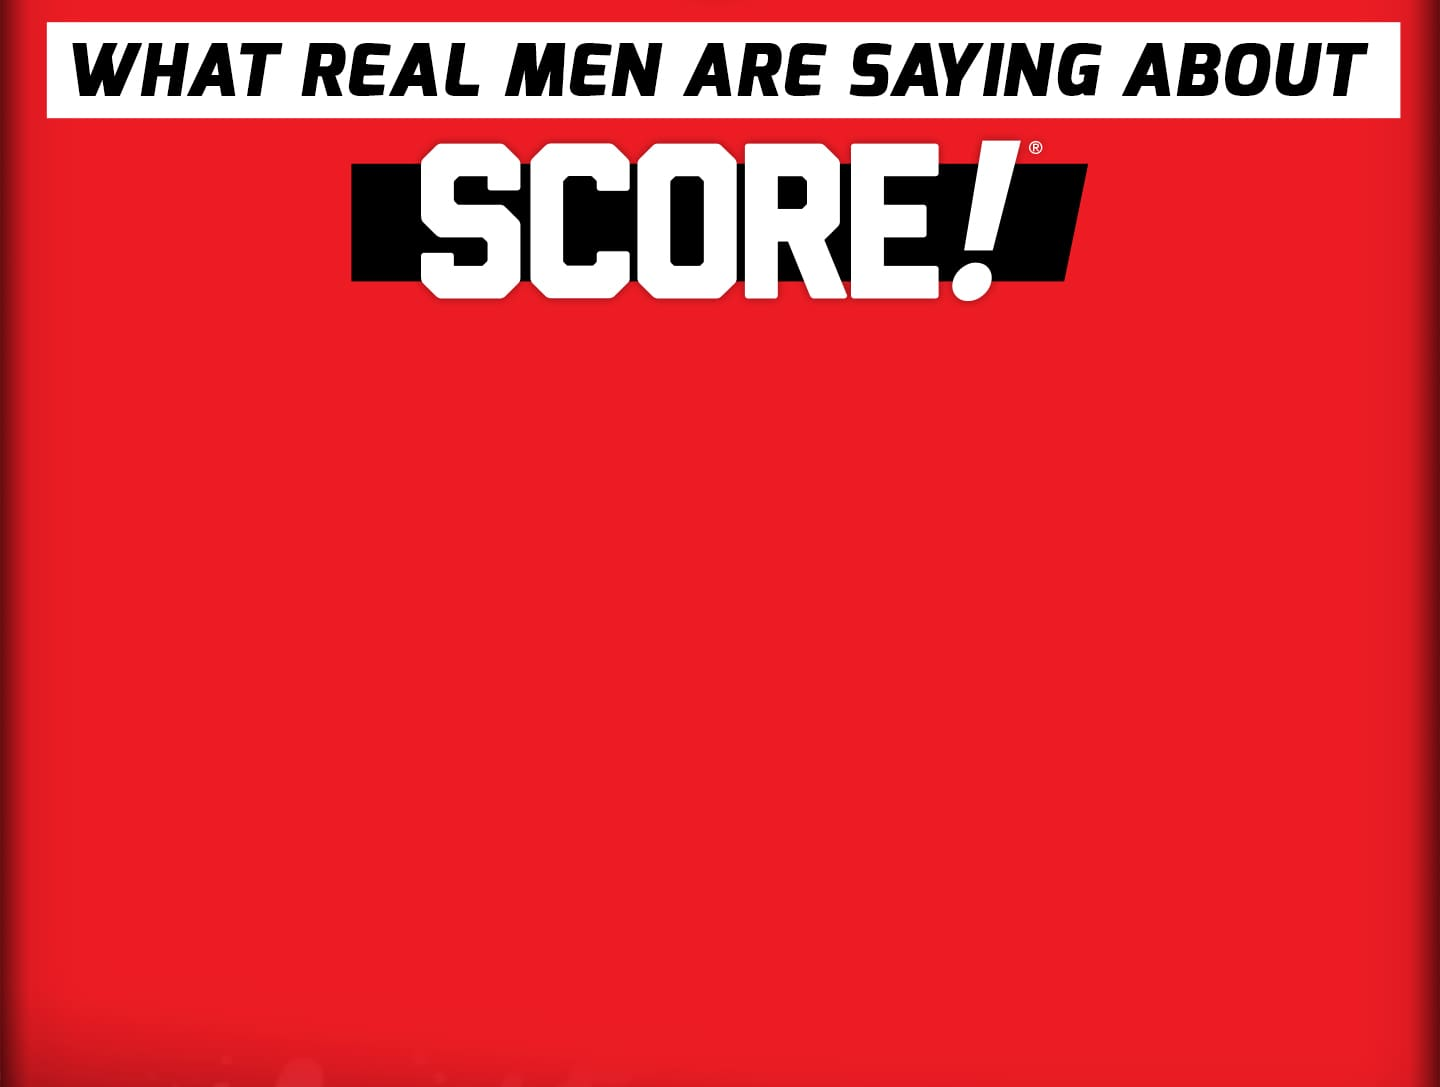 WHAT REAL MEN ARE SAYING ABOUT SCORE!